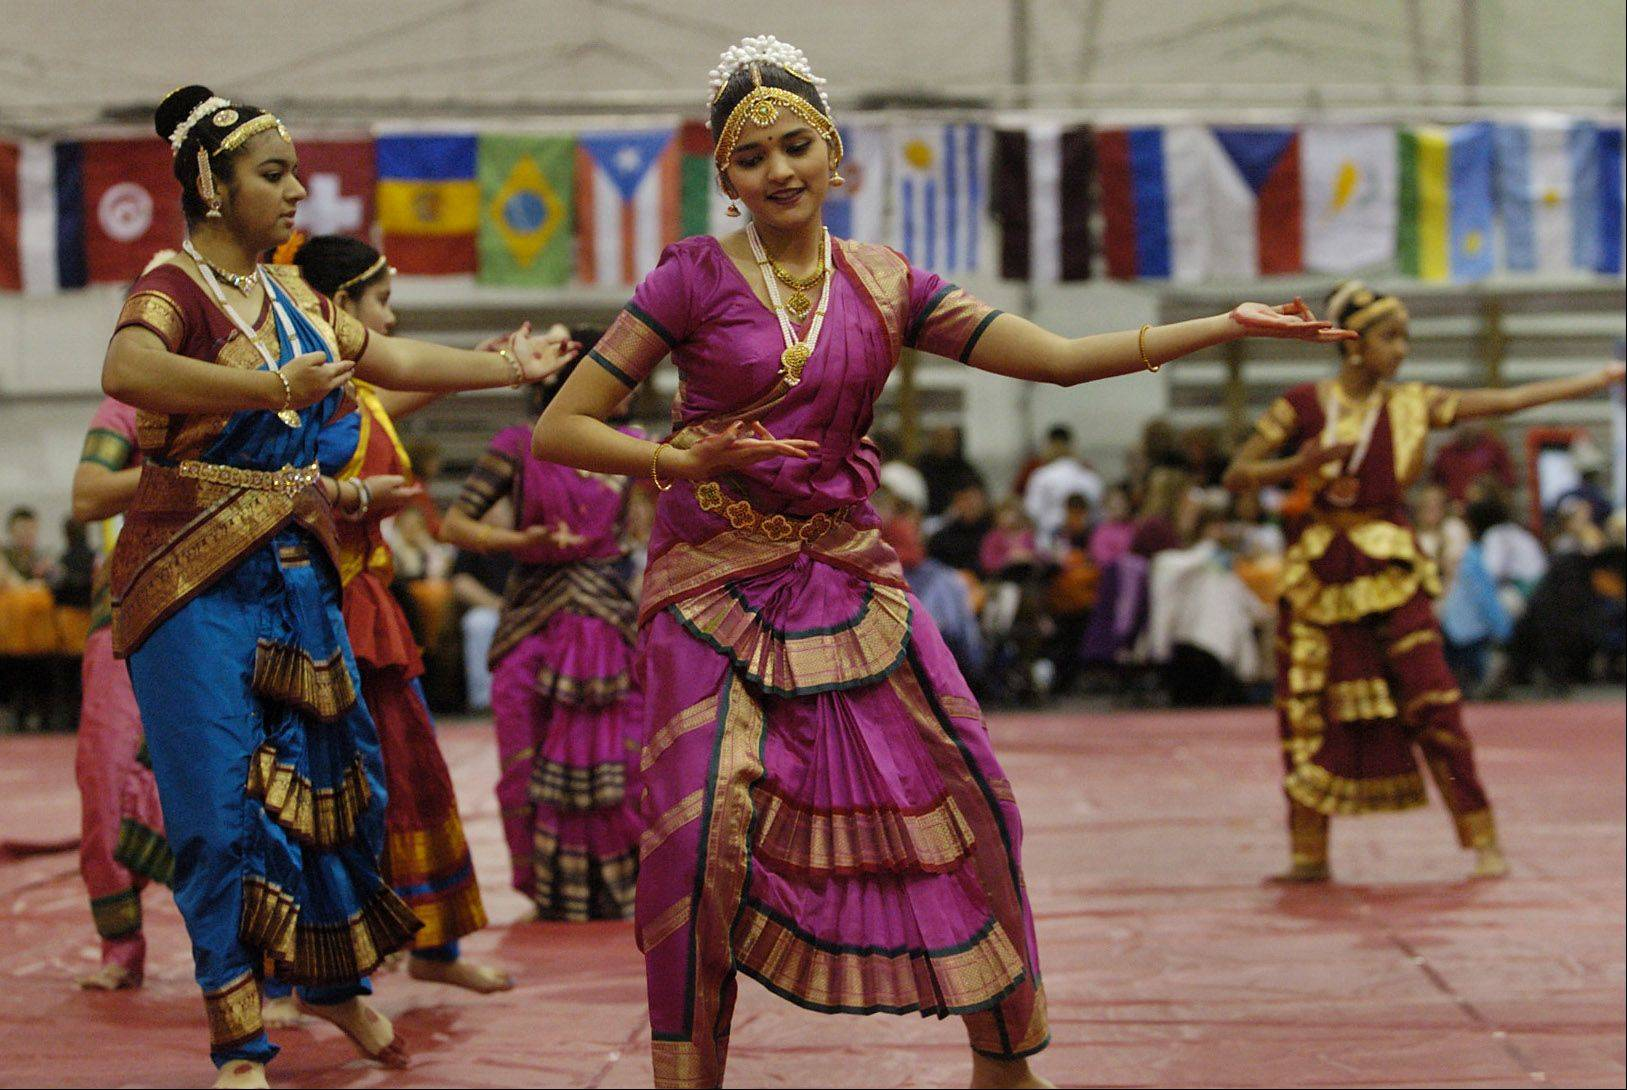 Performers from the Nartan Indian Academy of Dance in Naperville will be among the entertainers Sunday at North Central College�s annual International Festival.